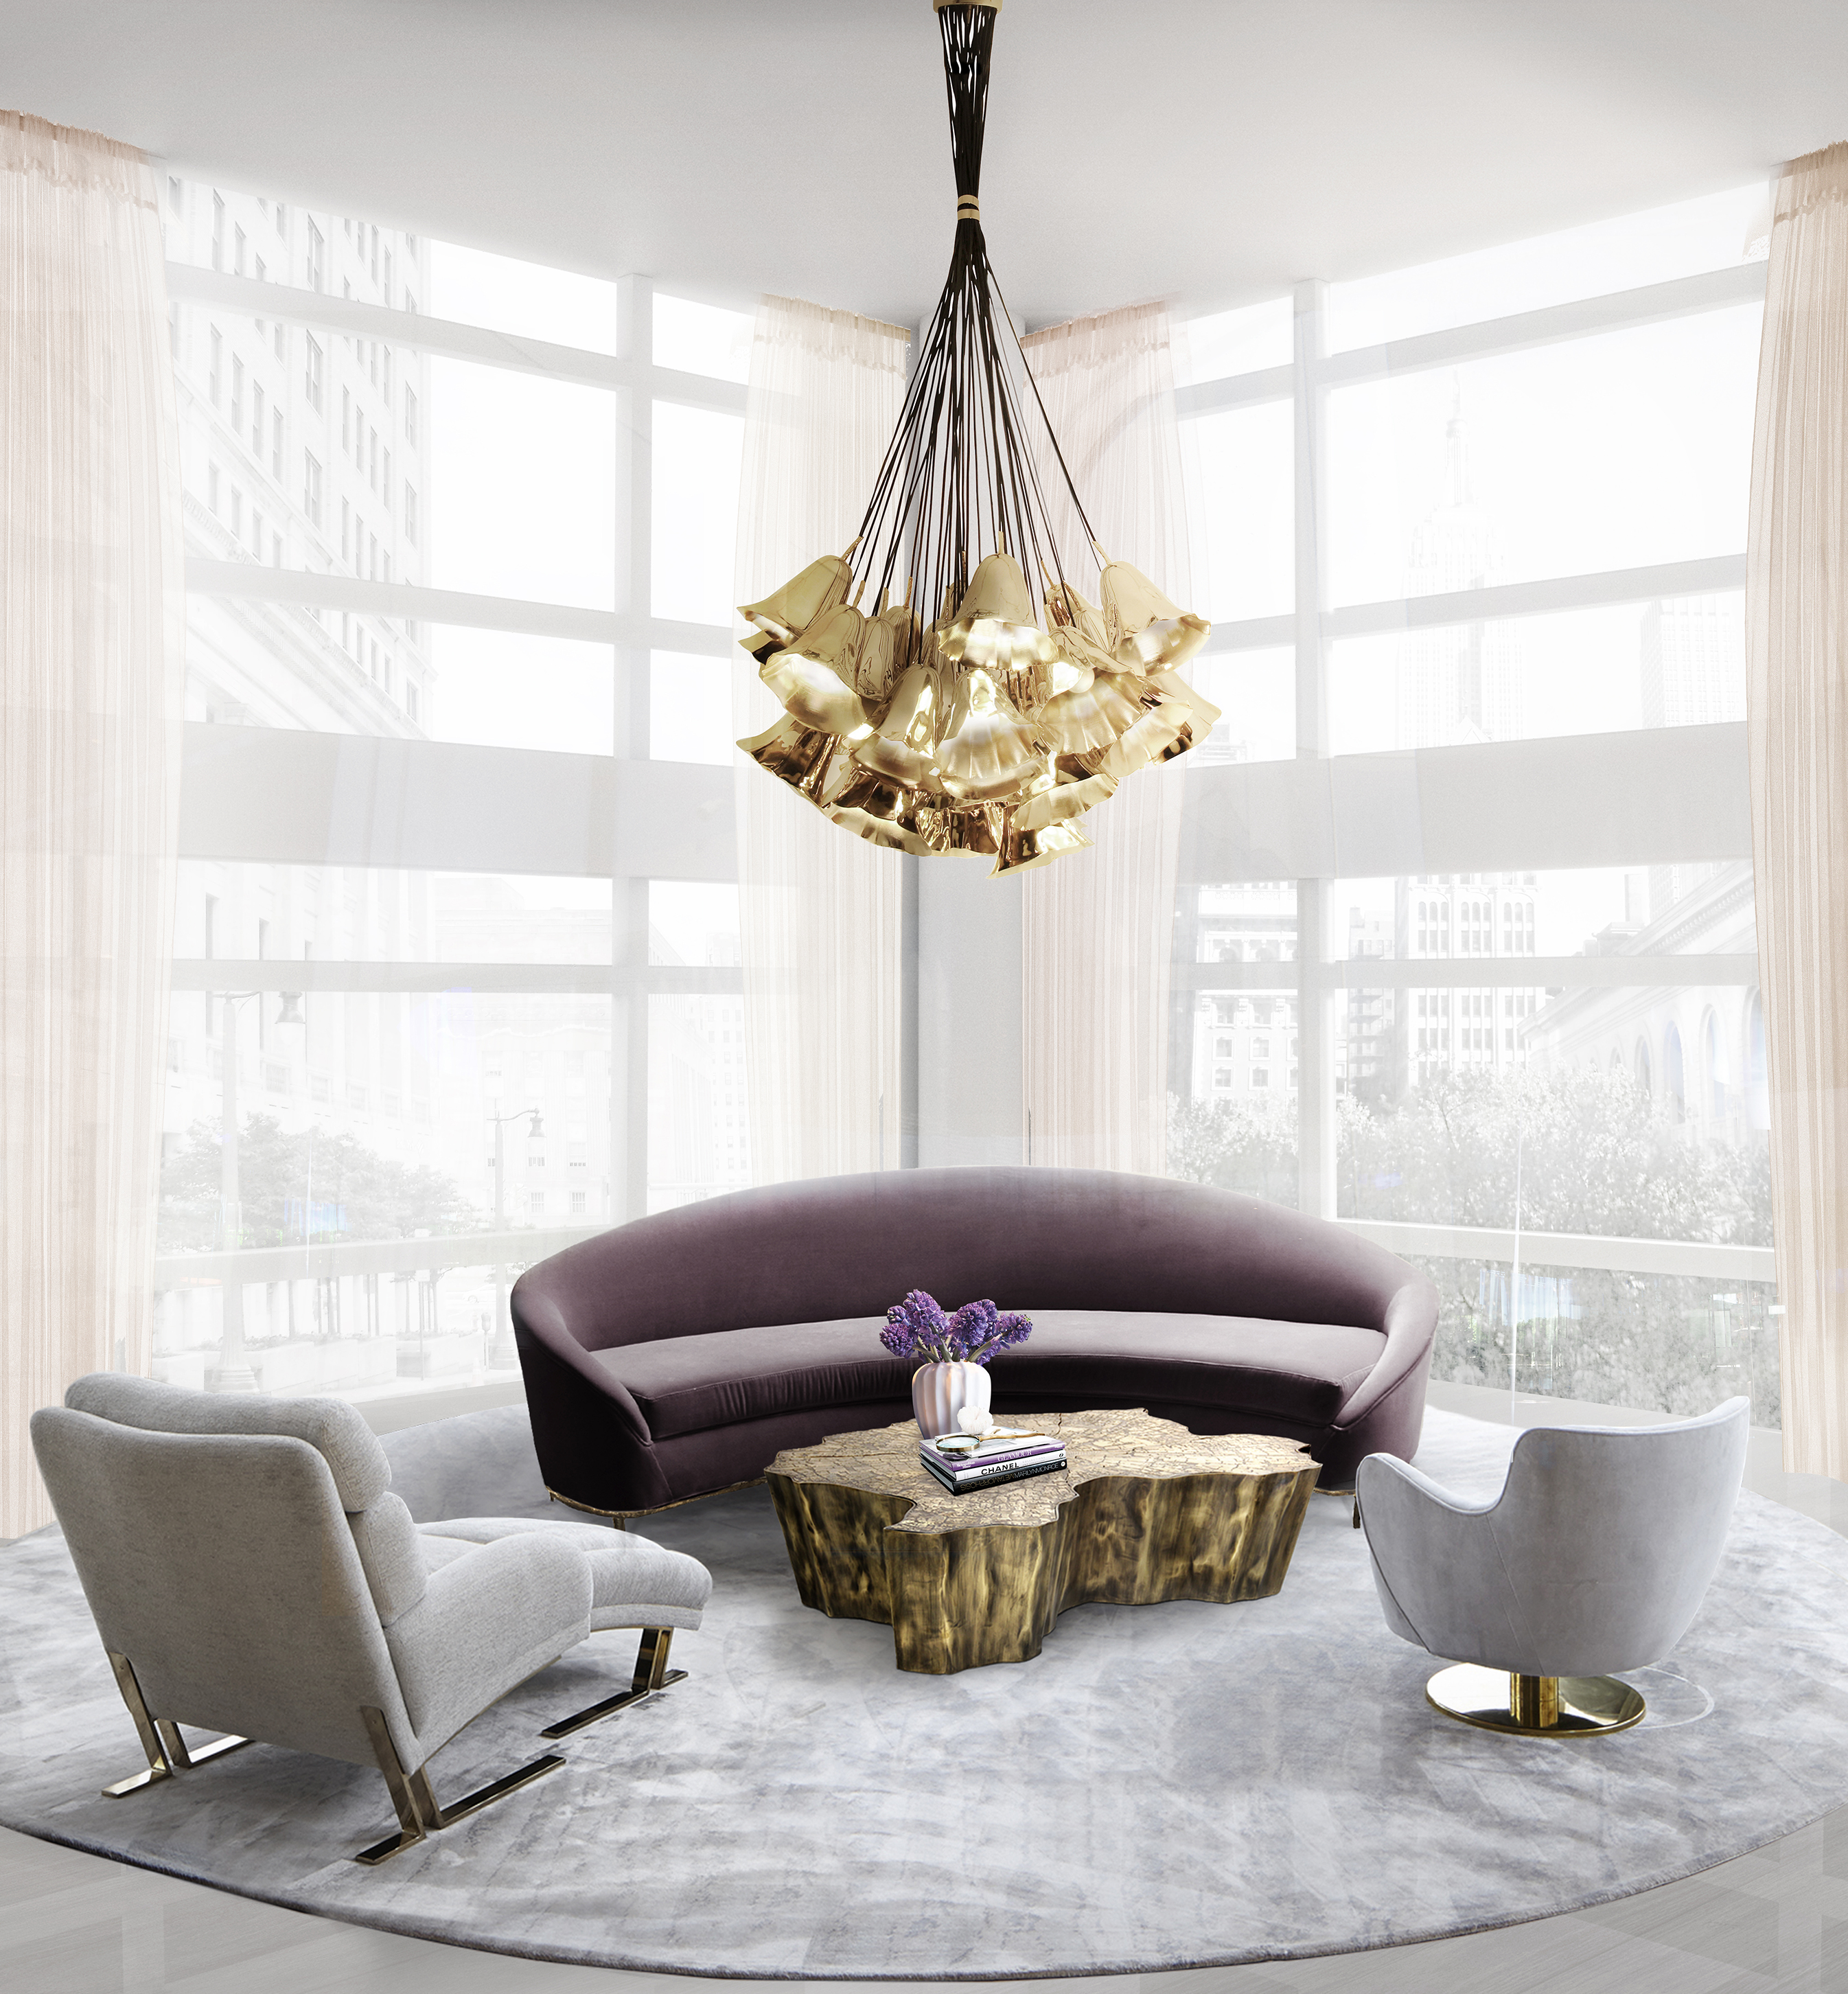 KOKET Vamp Sofa, Gia Chandelier Living Room Design 8 Decorating Ideas To  Improve Your Living